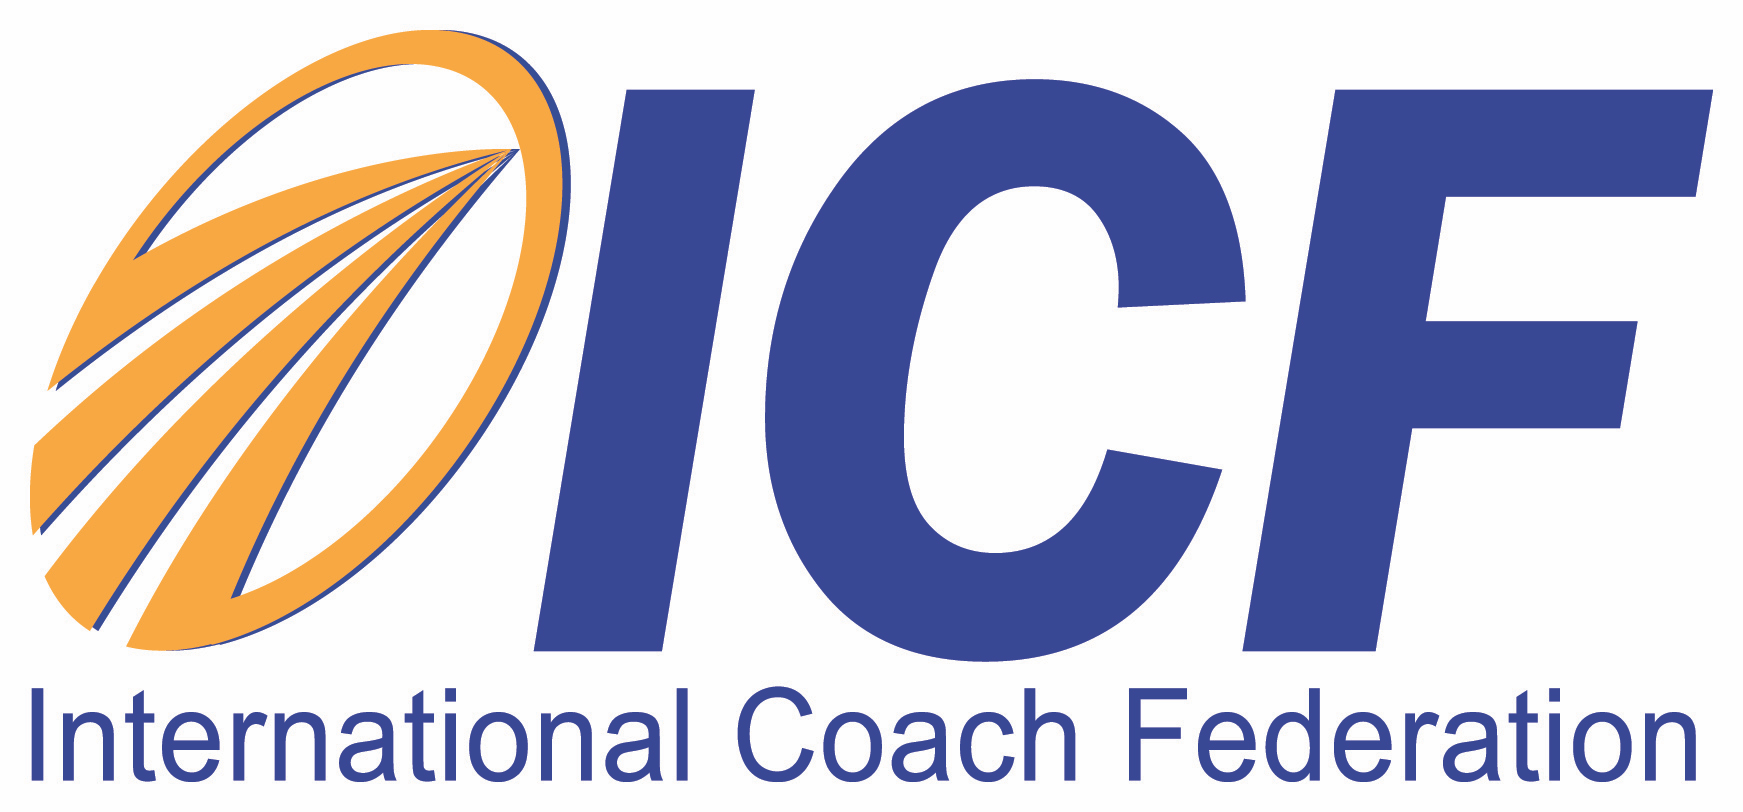 International Coach Federation Credentialed Coaches